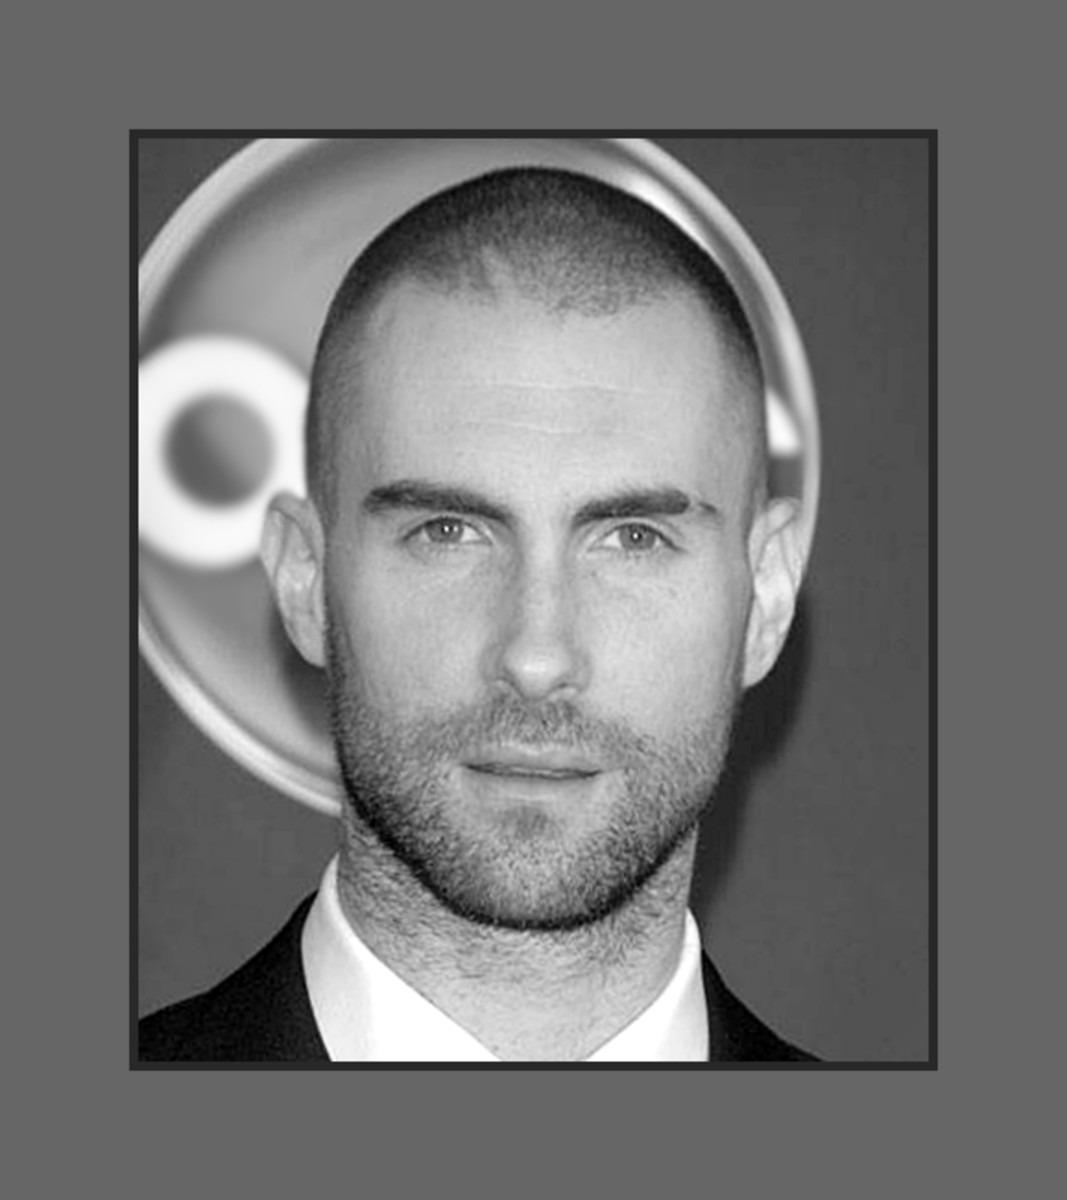 2013 Hairstyles for Men with Balding Thinning Hair - Style Cuts Trends